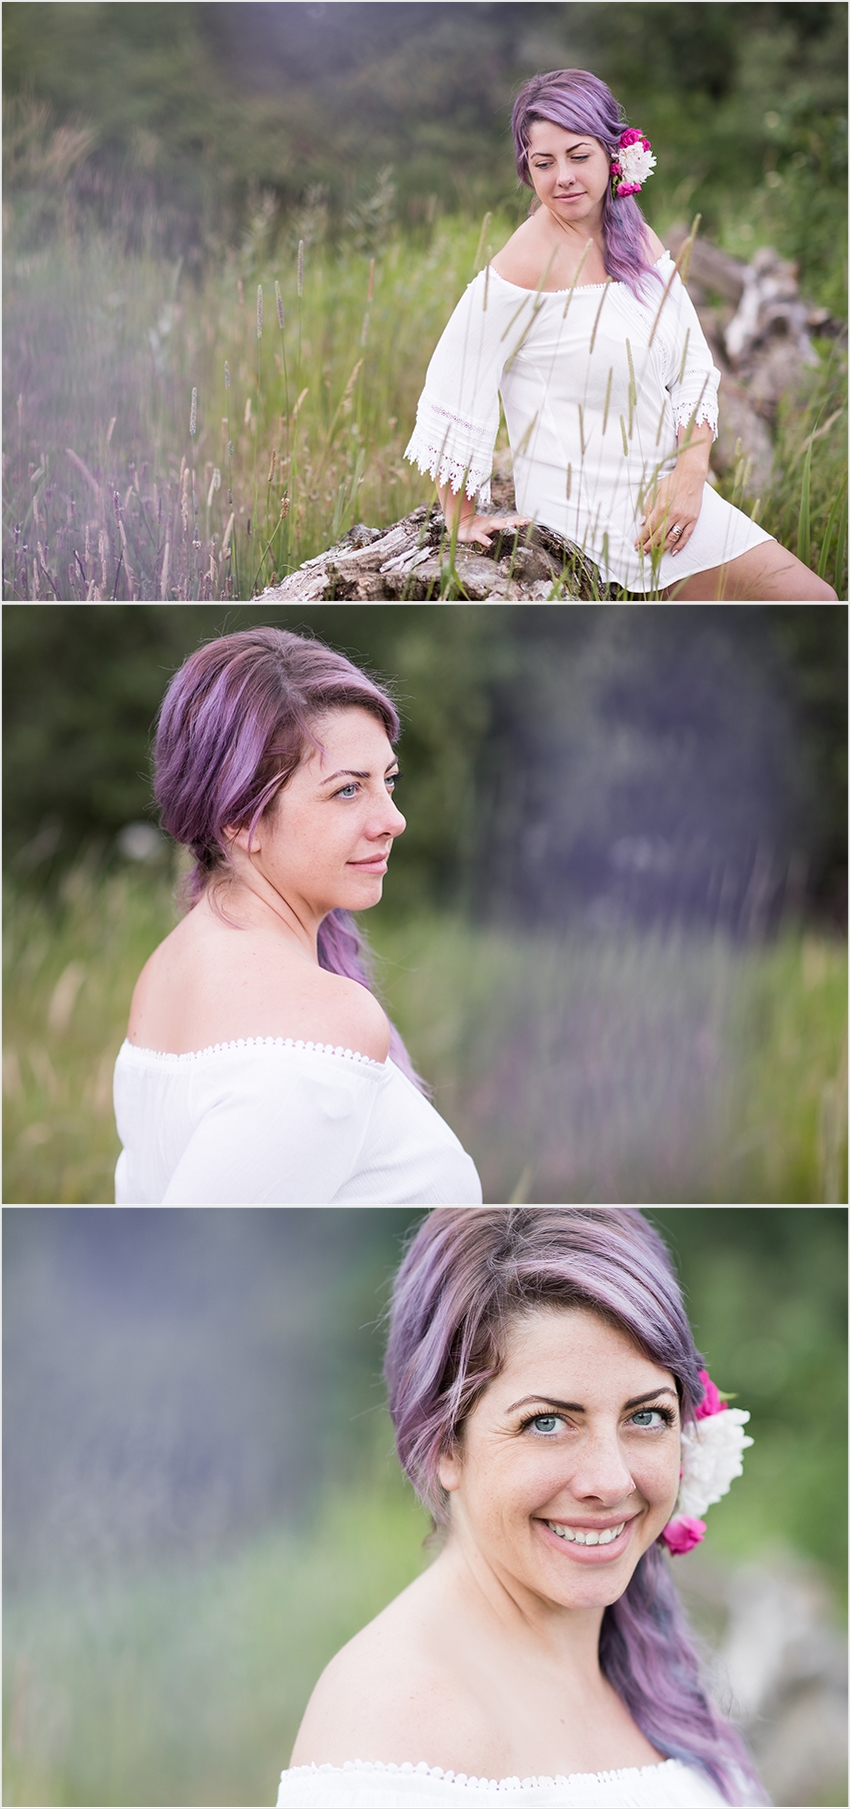 Ethereal inspiration photo session